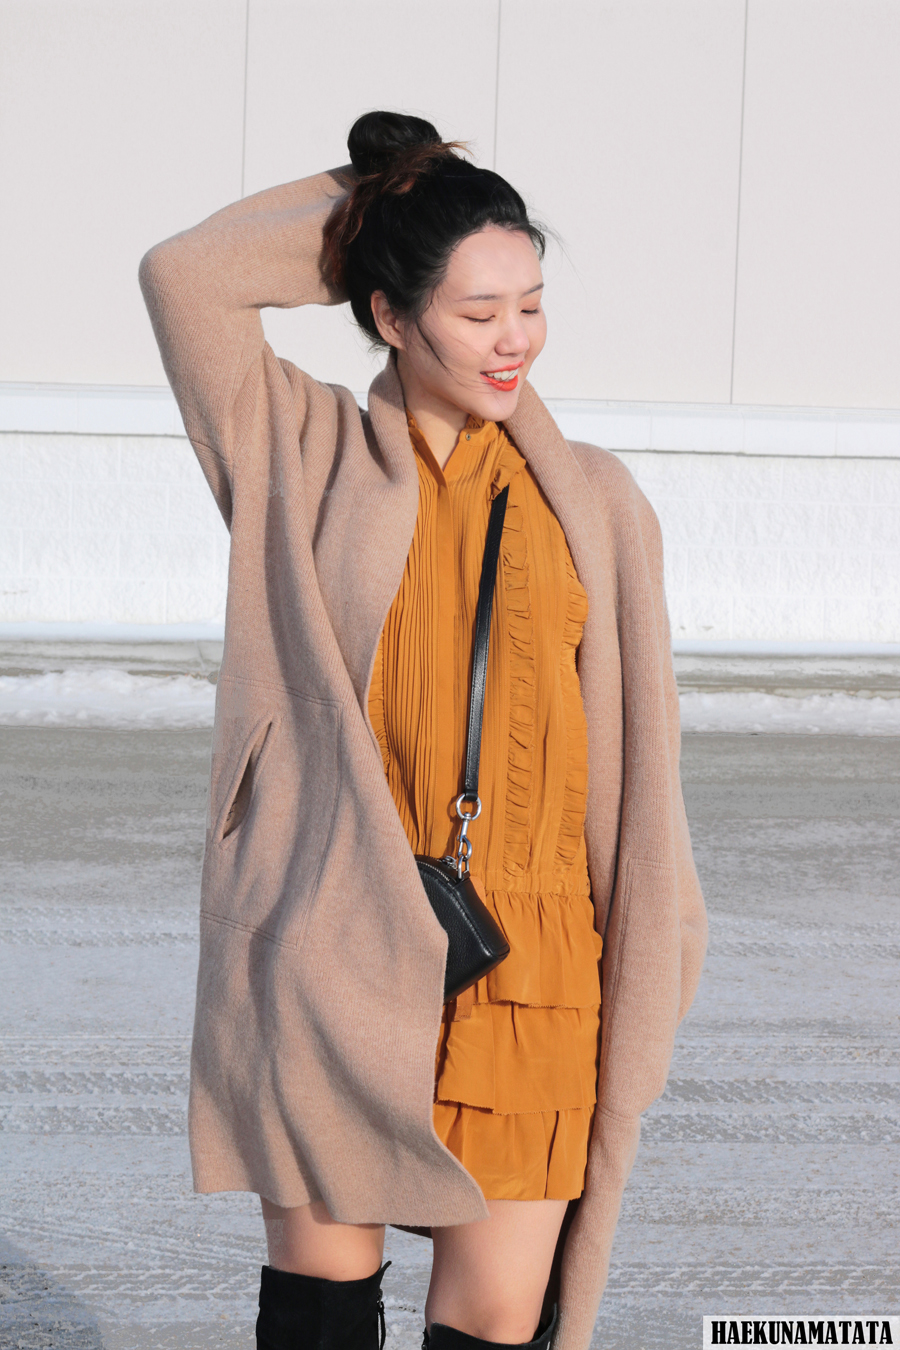 Ulla Johnson Ruffle Dress, Madewell Shawl Sweater coat, Marc Jacobs Shutter Bag, Knee High Boots Blogger Style OOTD